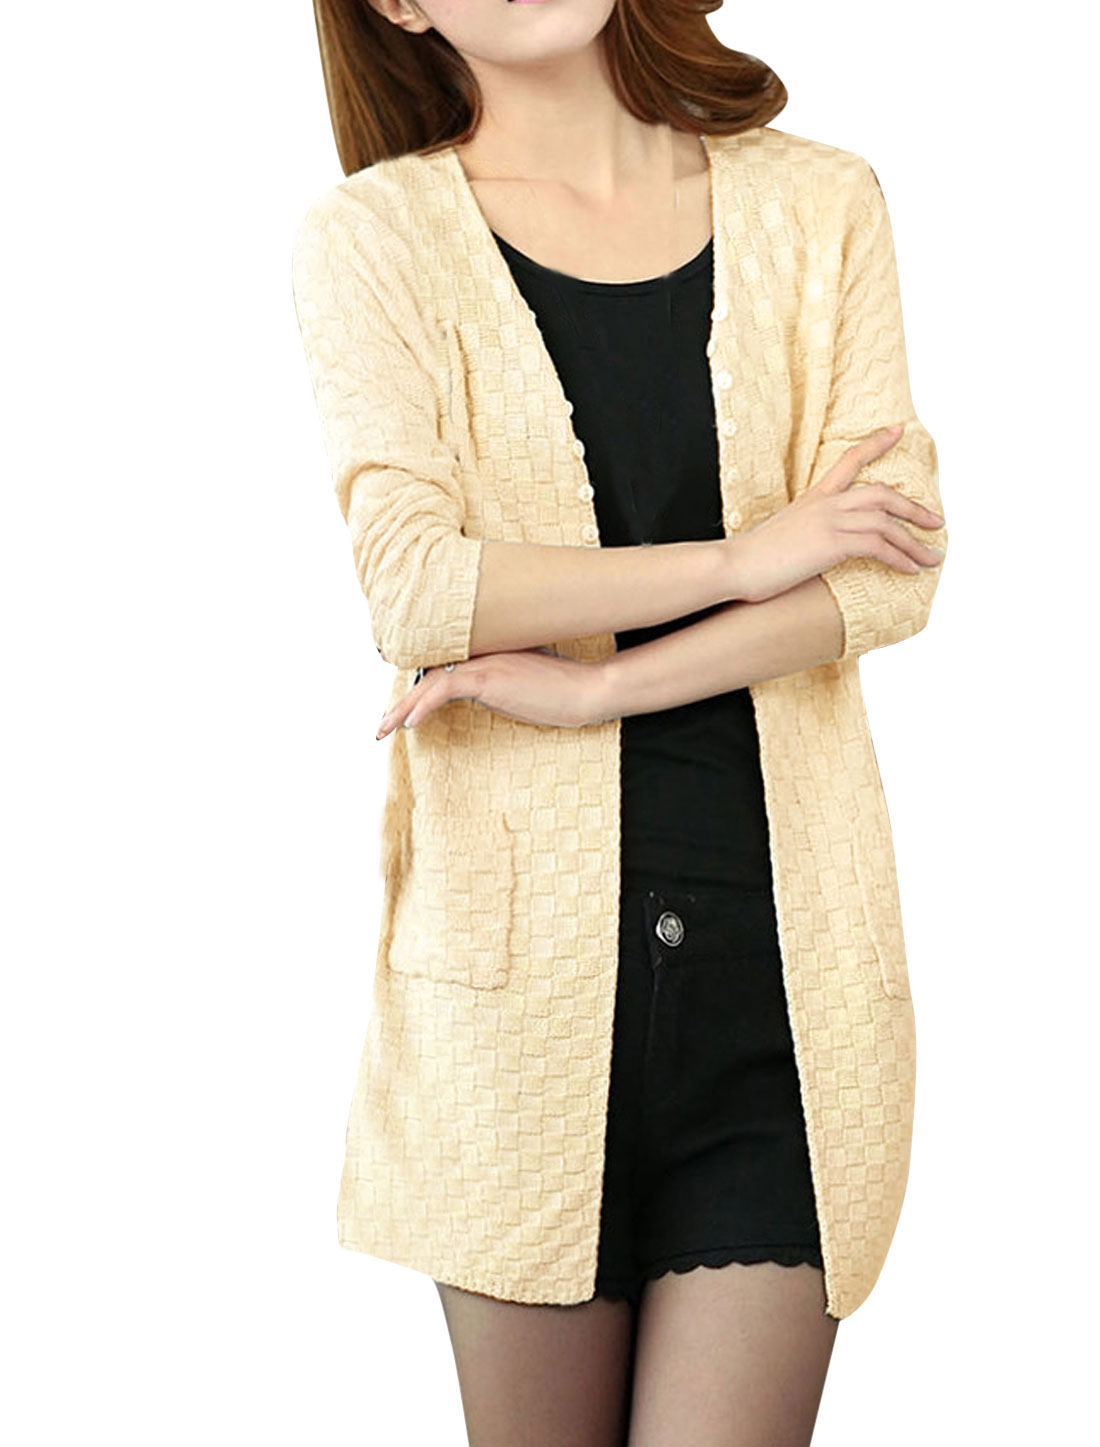 Lady Front Opening Buttons Decor Long Sleeve Knitted Cardigan Beige S